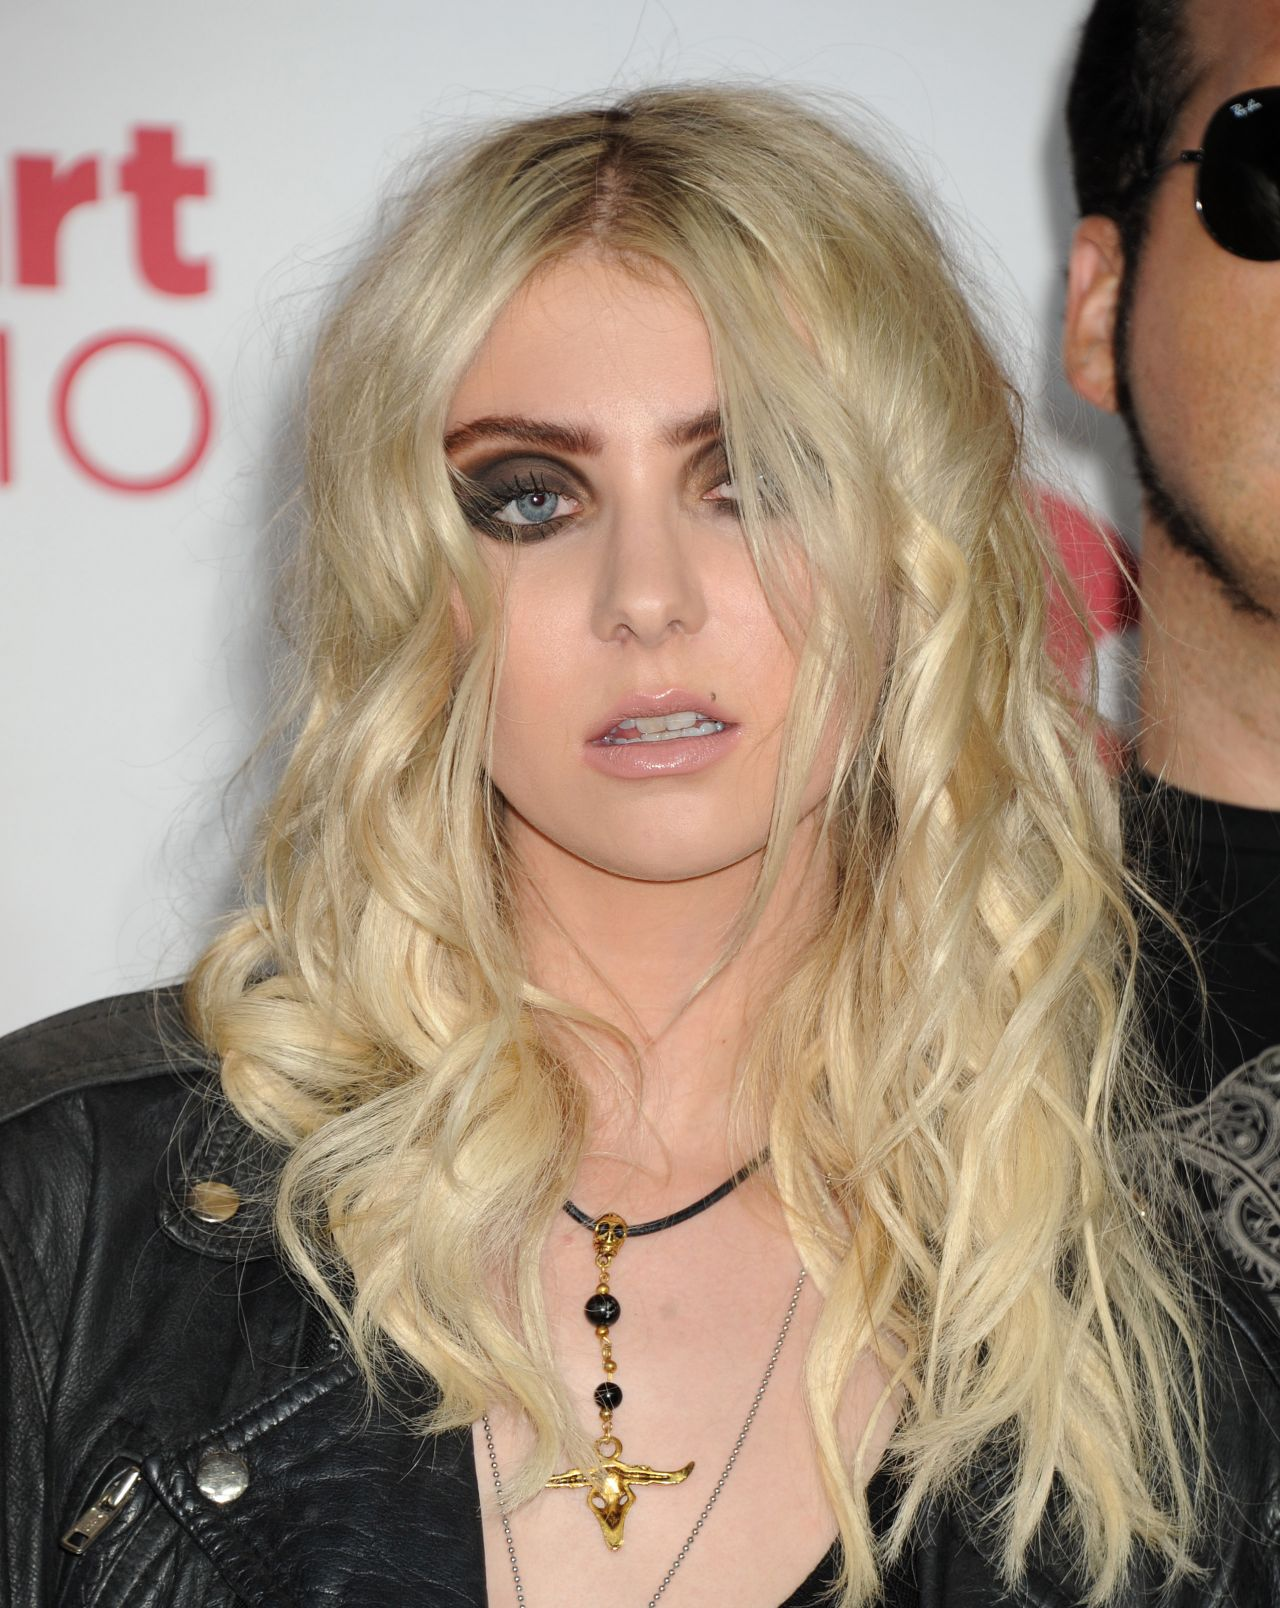 Taylor Momsen At Helmut Lang Spring 2014 Fashion Show In ... |Taylor Momsen 2014